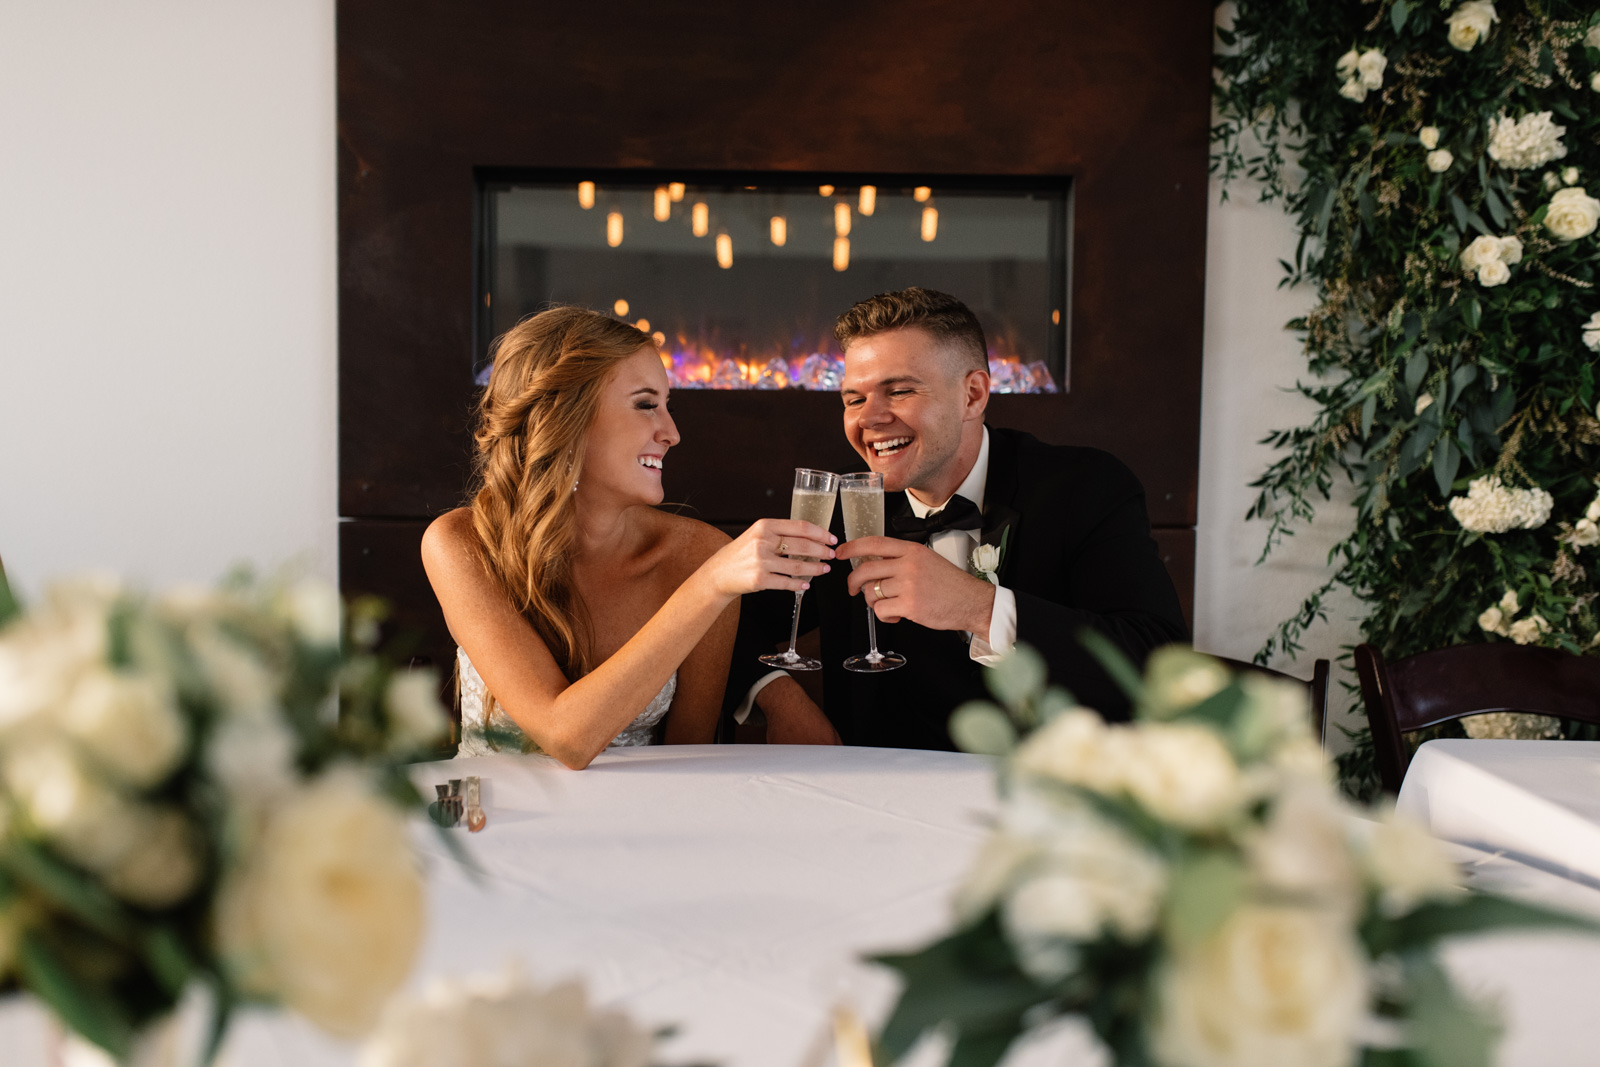 bride and groom toast champagne by fireplace koru berry farm wedding venue